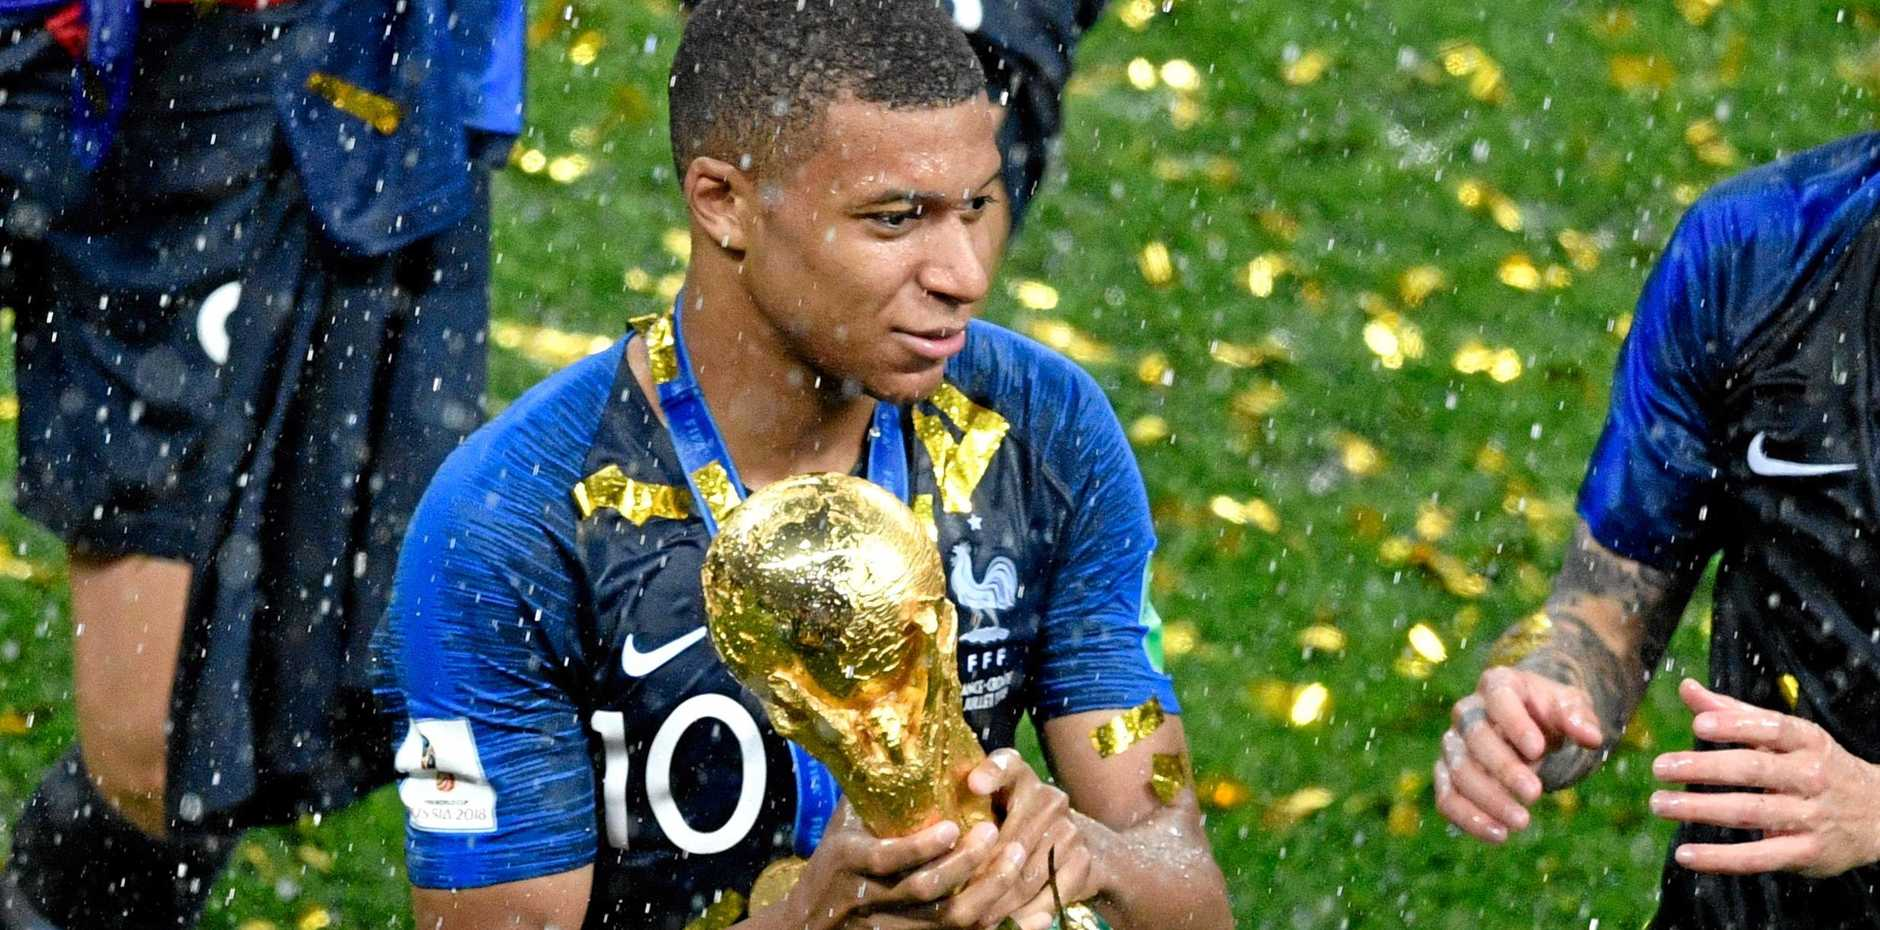 France forward Kylian Mbappe gets his hands on the World Cup trophy. Picture: Alexander Nemenov